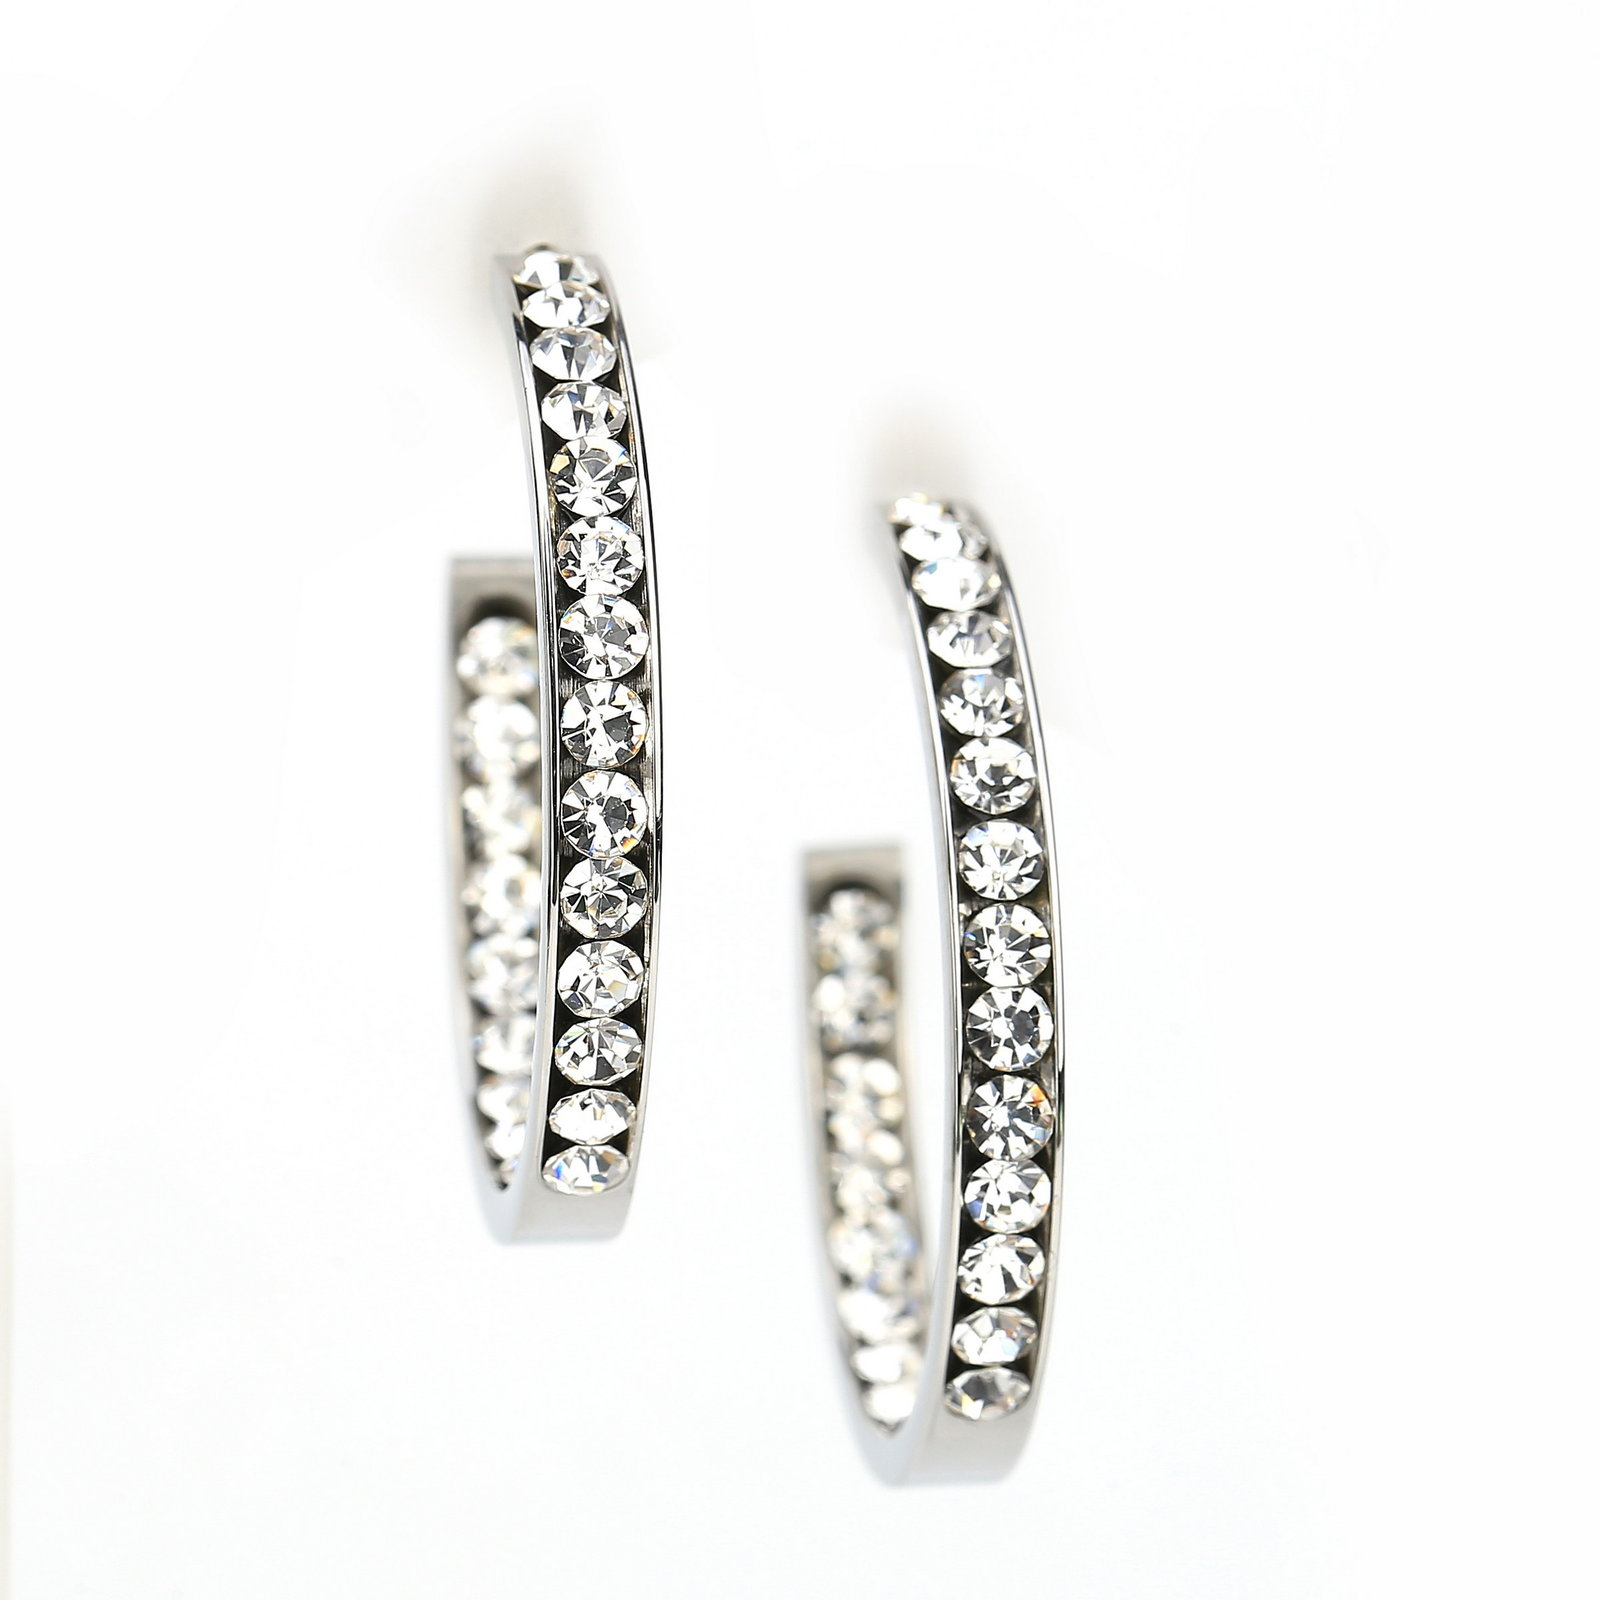 UNITED ELEGANCE Silver Tone Hoop Earrings With Dazzling Swarovski Style Crystals